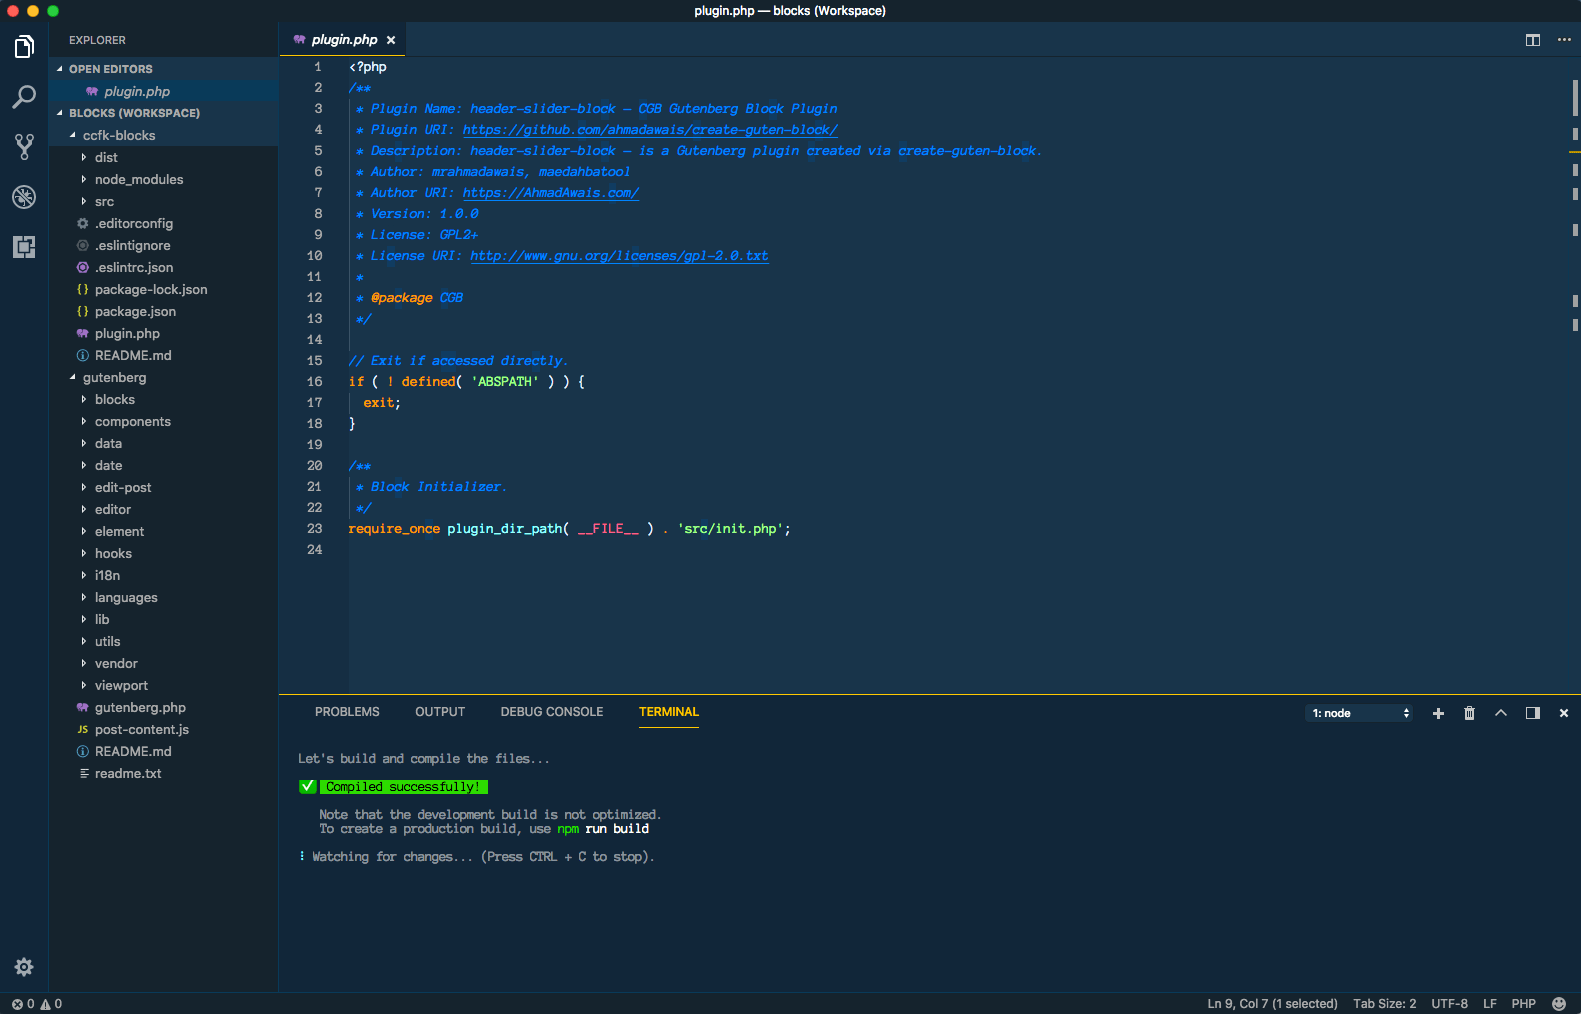 A screenshot of the VS Code text editor, showing the integrated terminal and sidebar of folders